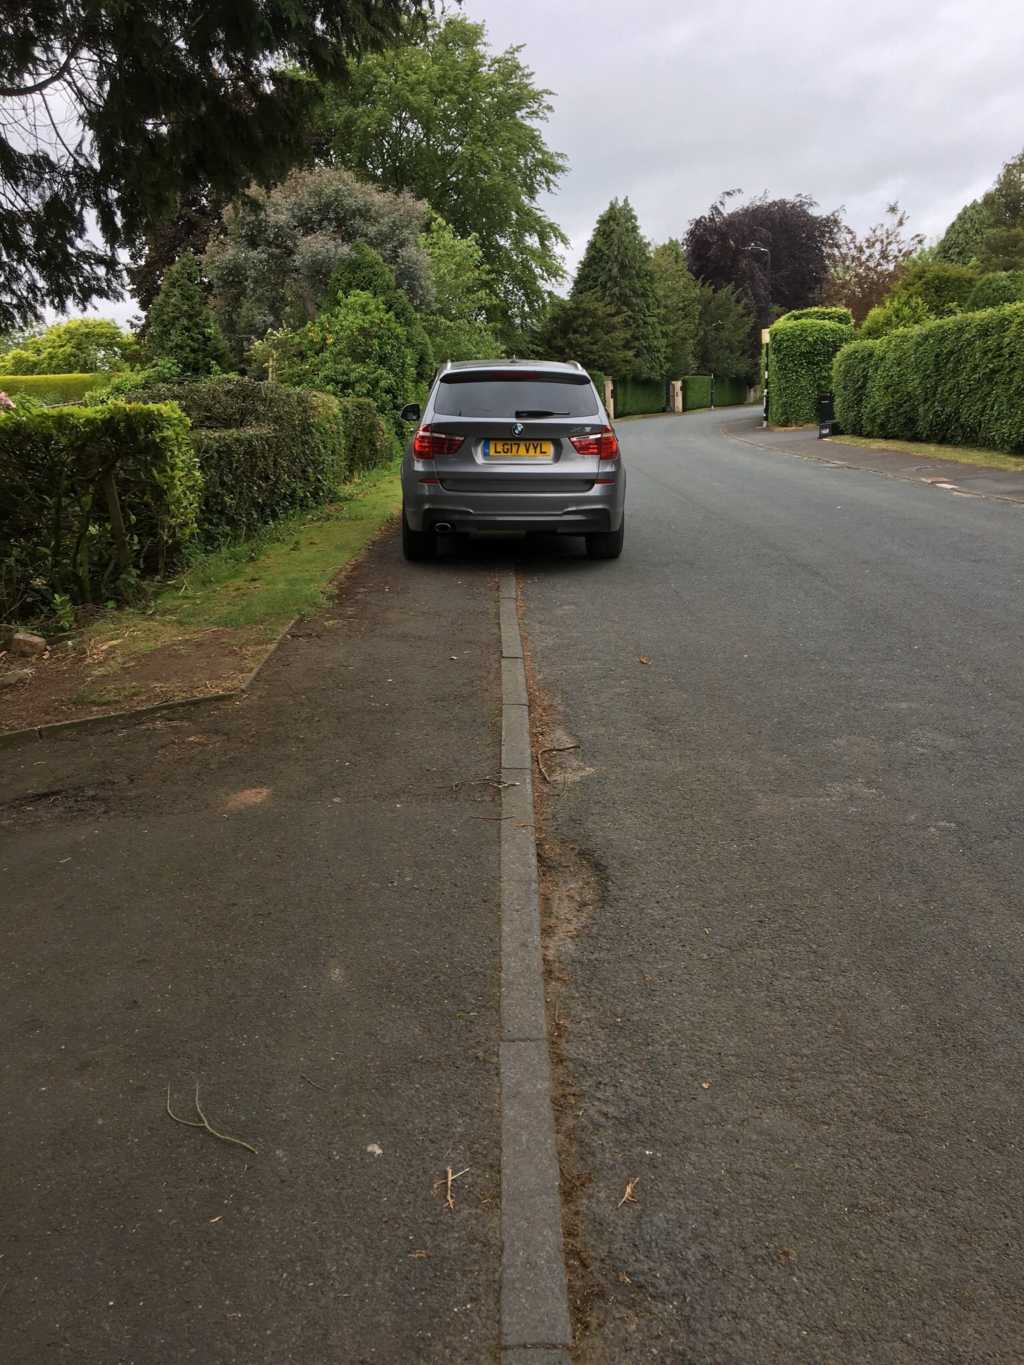 LG17 VYL displaying Inconsiderate Parking